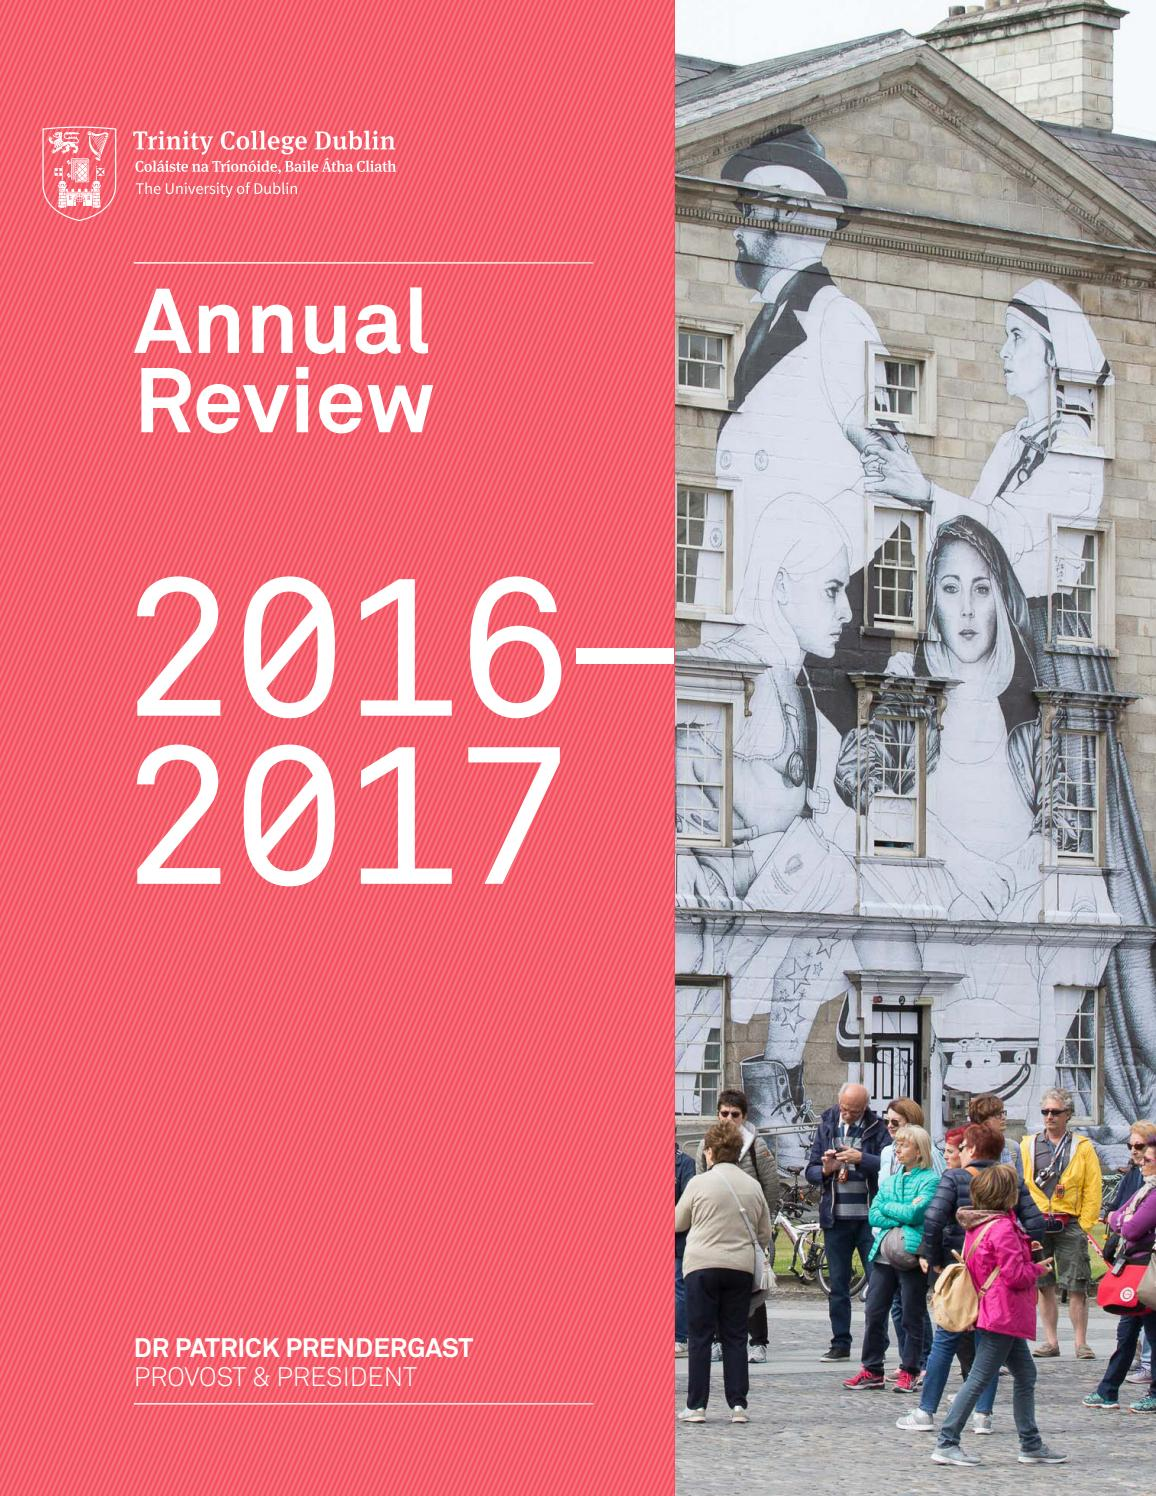 Provosts annual review 2016 2017 trinity college dublin by public provosts annual review 2016 2017 trinity college dublin by public affairs and communications pac trinity college dublin issuu fandeluxe Gallery